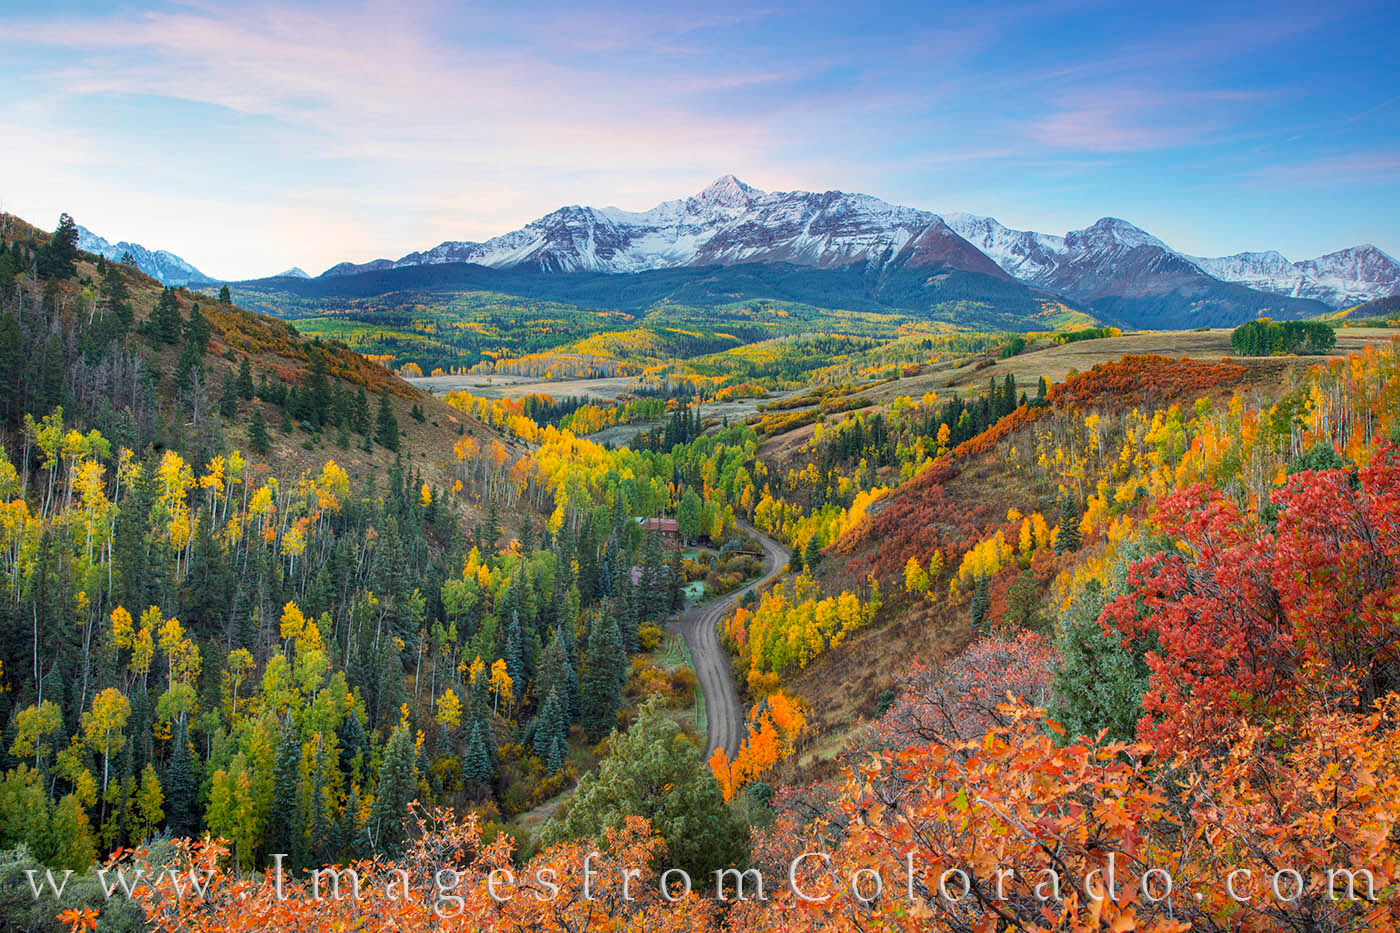 Before first light hit the peak of Mount Wilson, the high clouds were a soft, pastel pink. Below, the aspen trees were scattered...